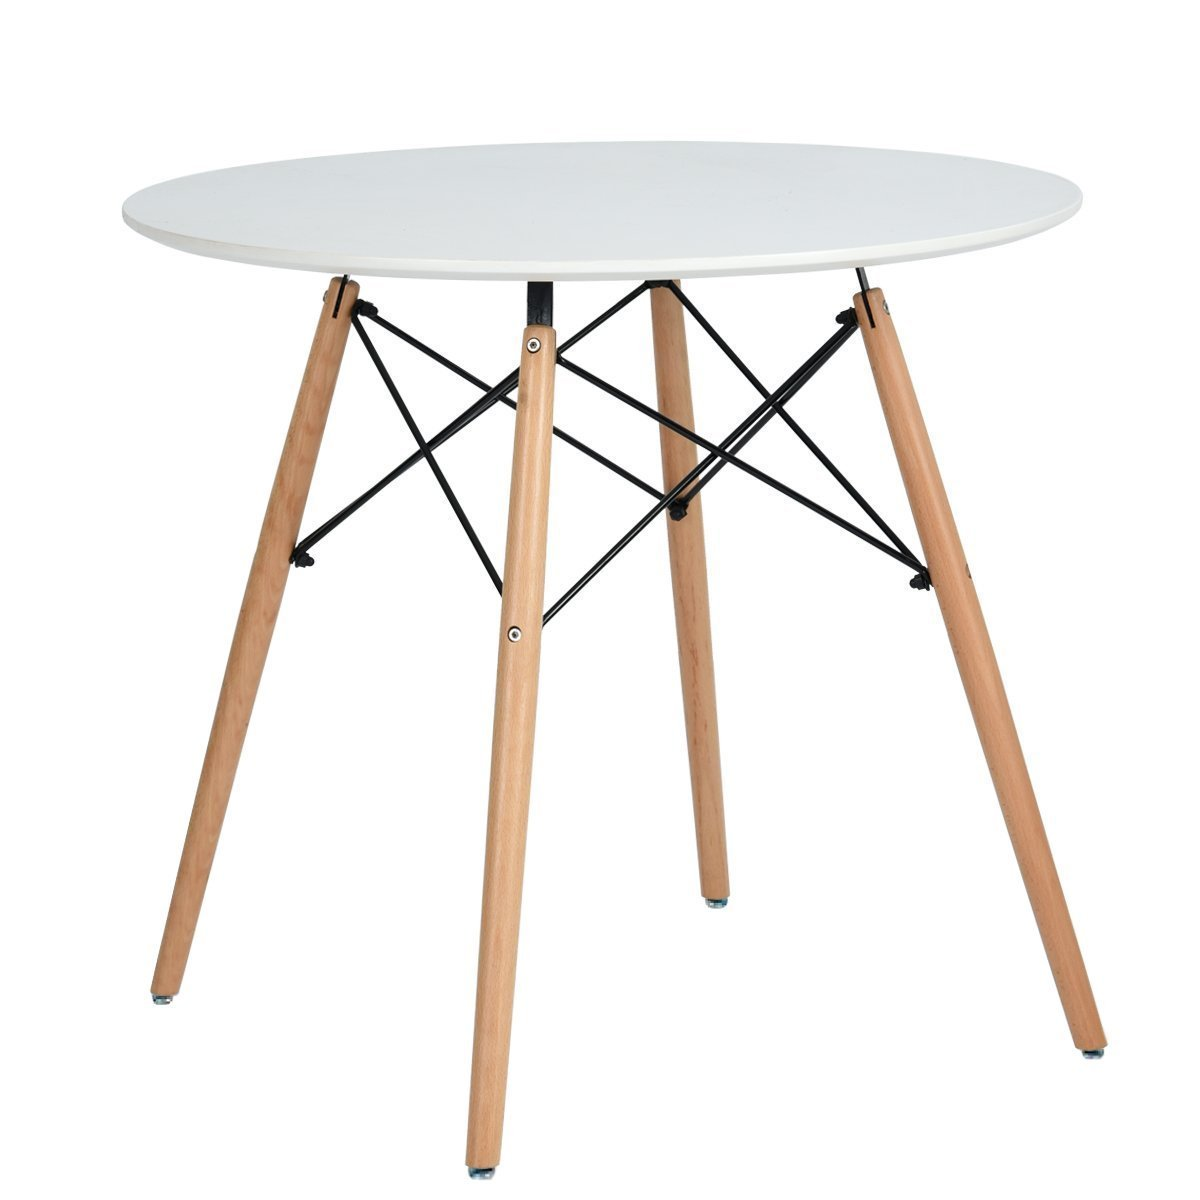 Coavas Chad Kitchen Dining White Round Coffee Modern Leisure Wooden Tea Table Office Conference Pedestal Desk, 31.4931.4929.52 Inch